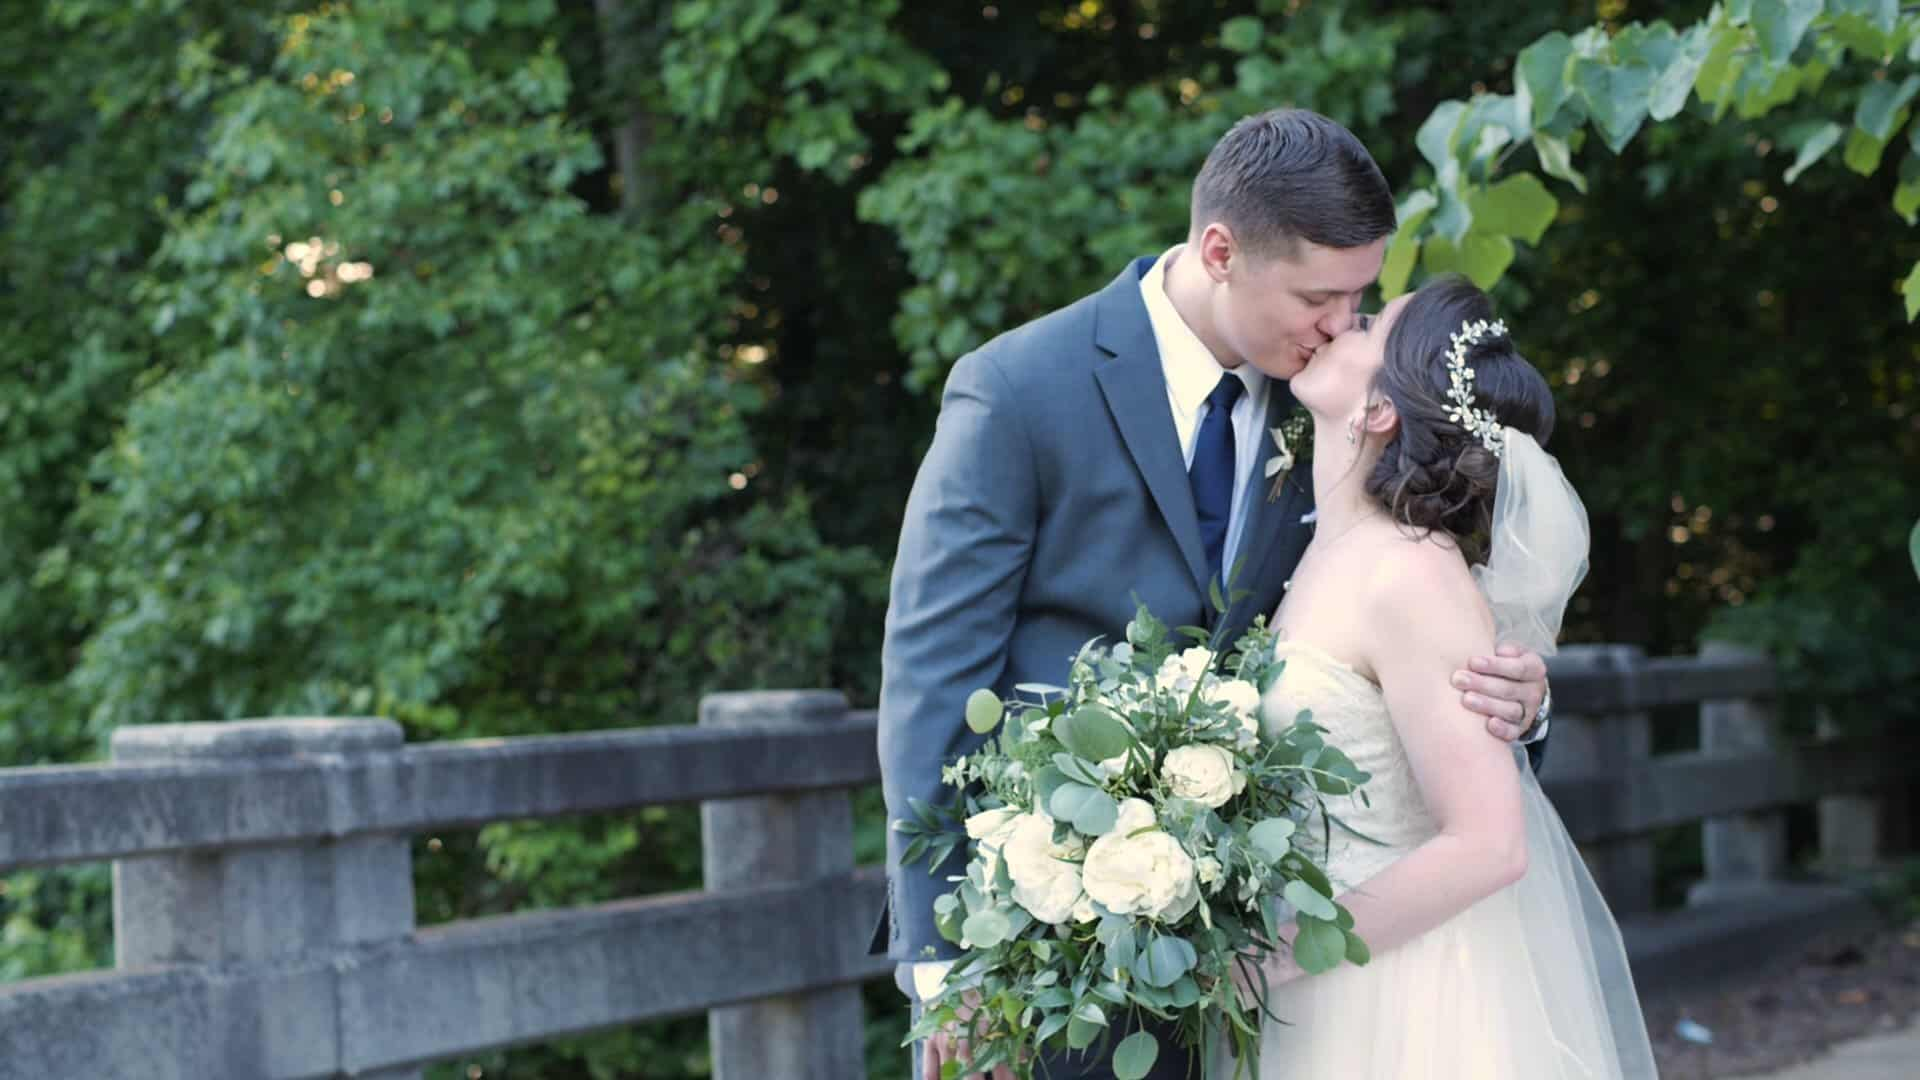 Jordan + David | Highlight Film